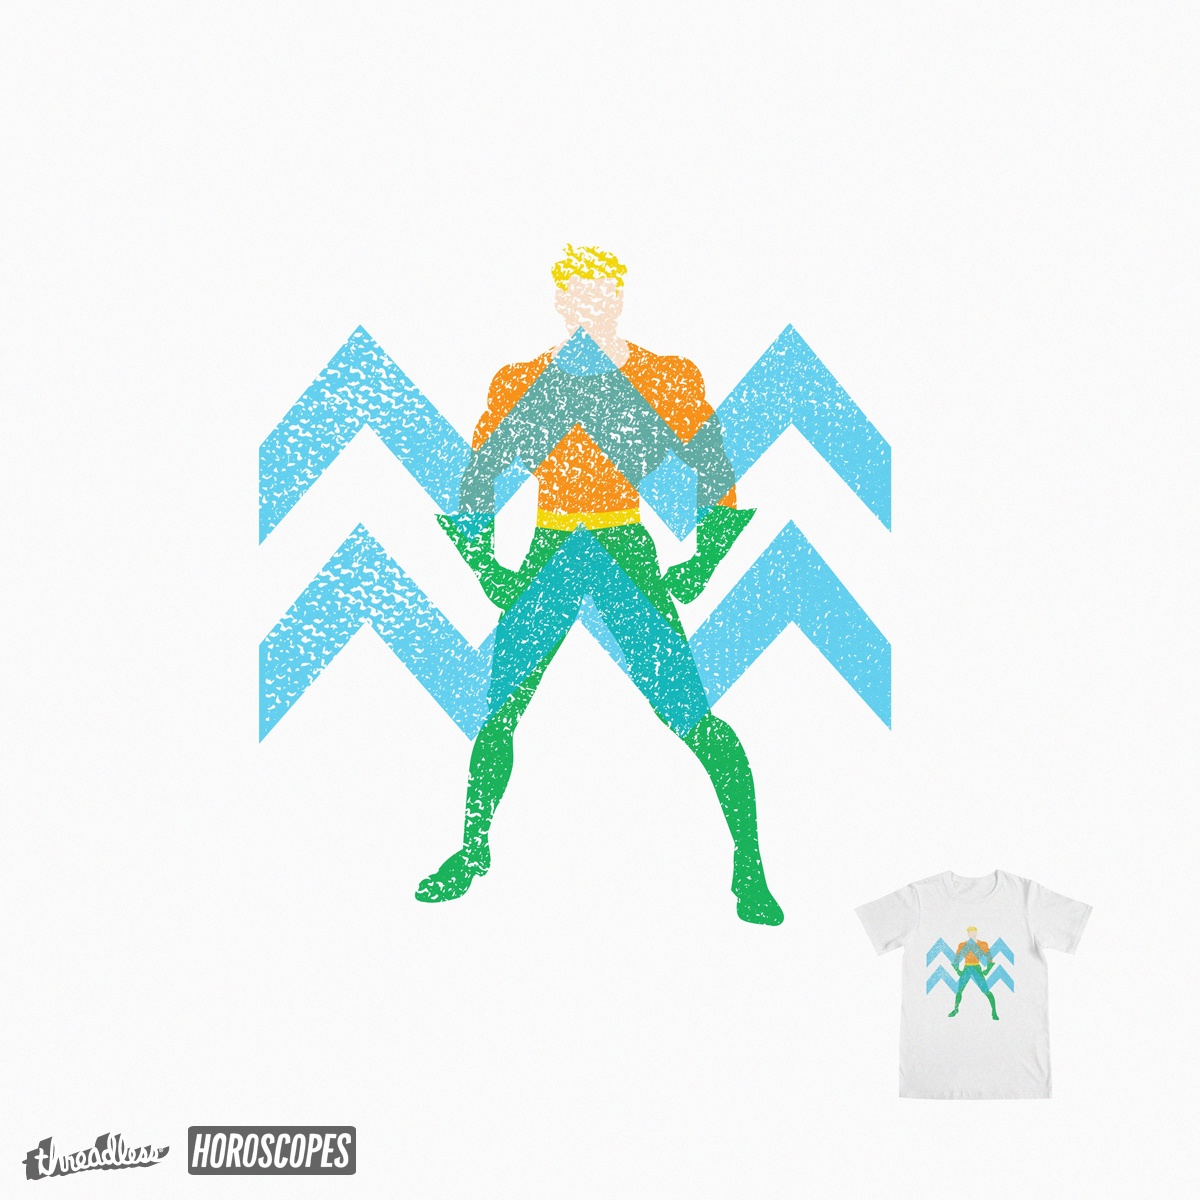 Score Aquarium top model by Skate_e1 on Threadless.